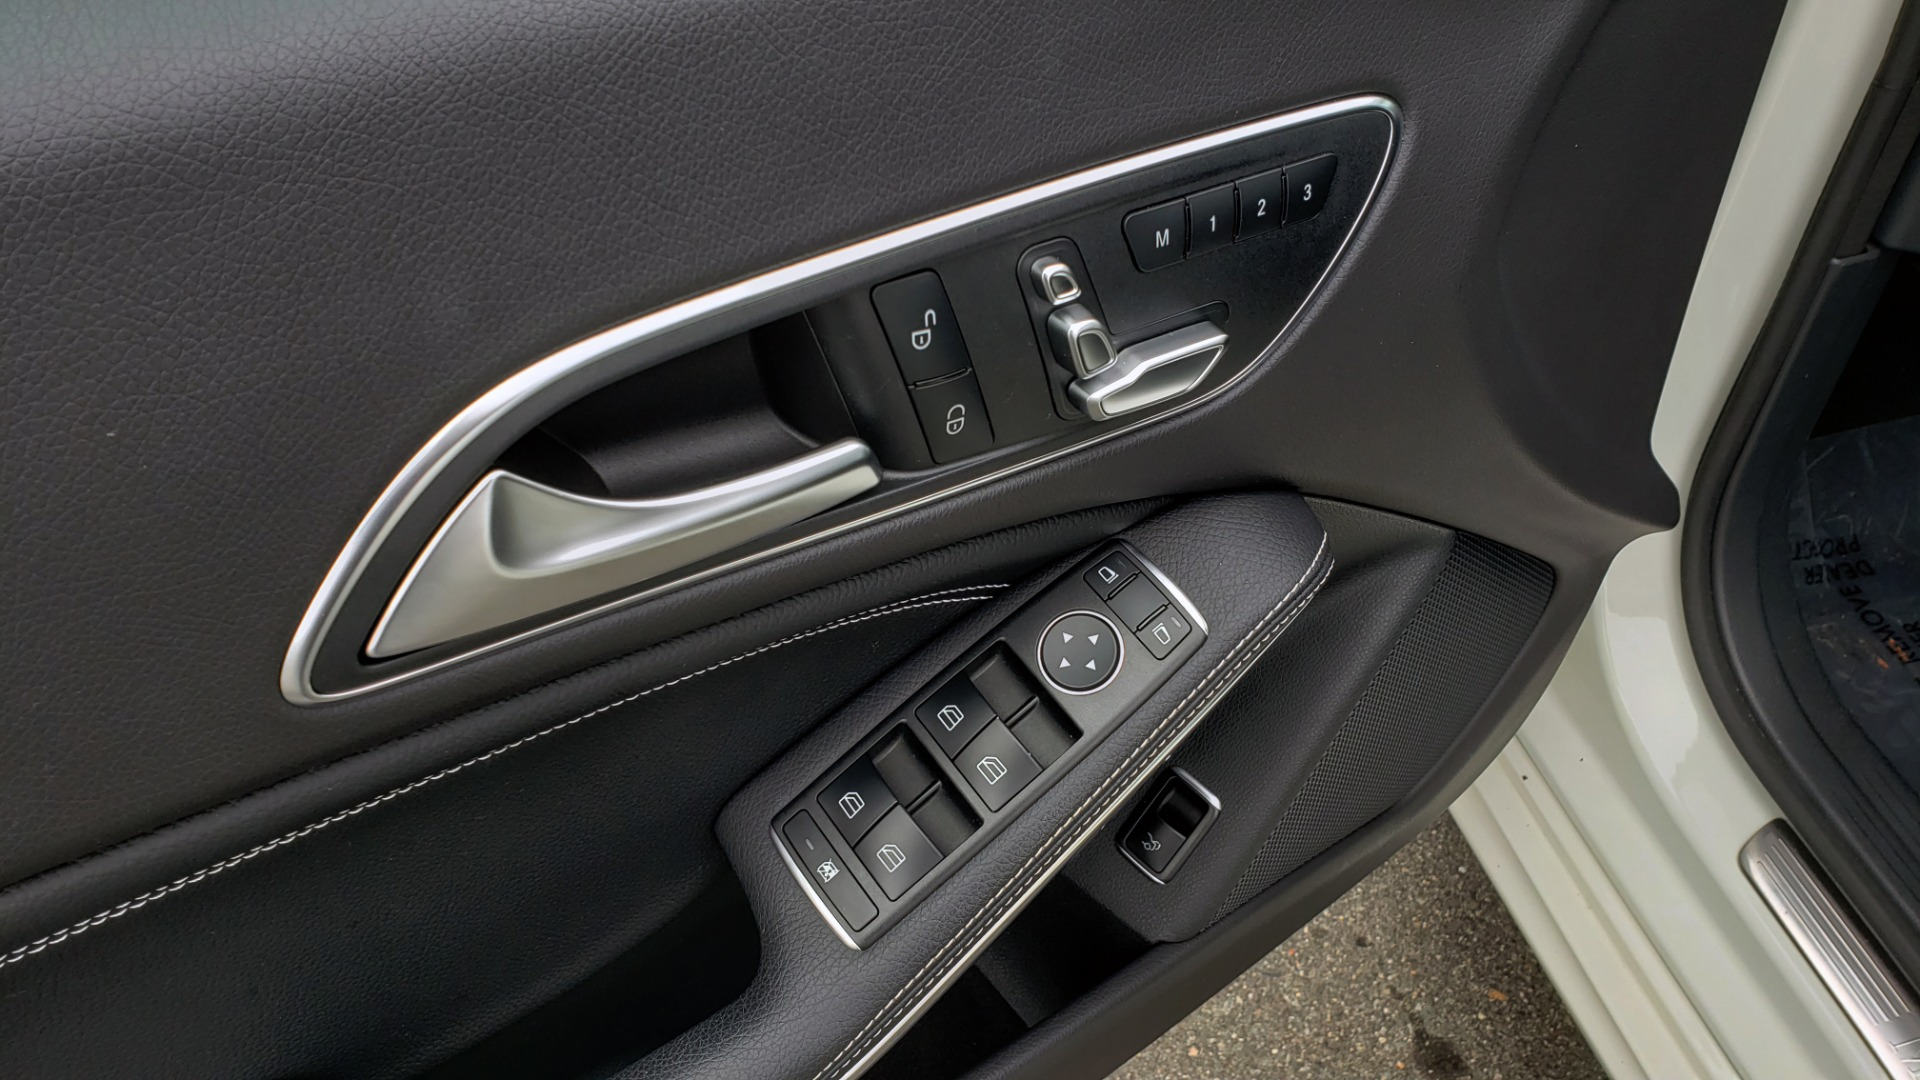 Used 2018 Mercedes-Benz CLA 250 PREMIUM / NAV / PANO-ROOF / APPLE CARPLAY / REARVIEW for sale $23,995 at Formula Imports in Charlotte NC 28227 30